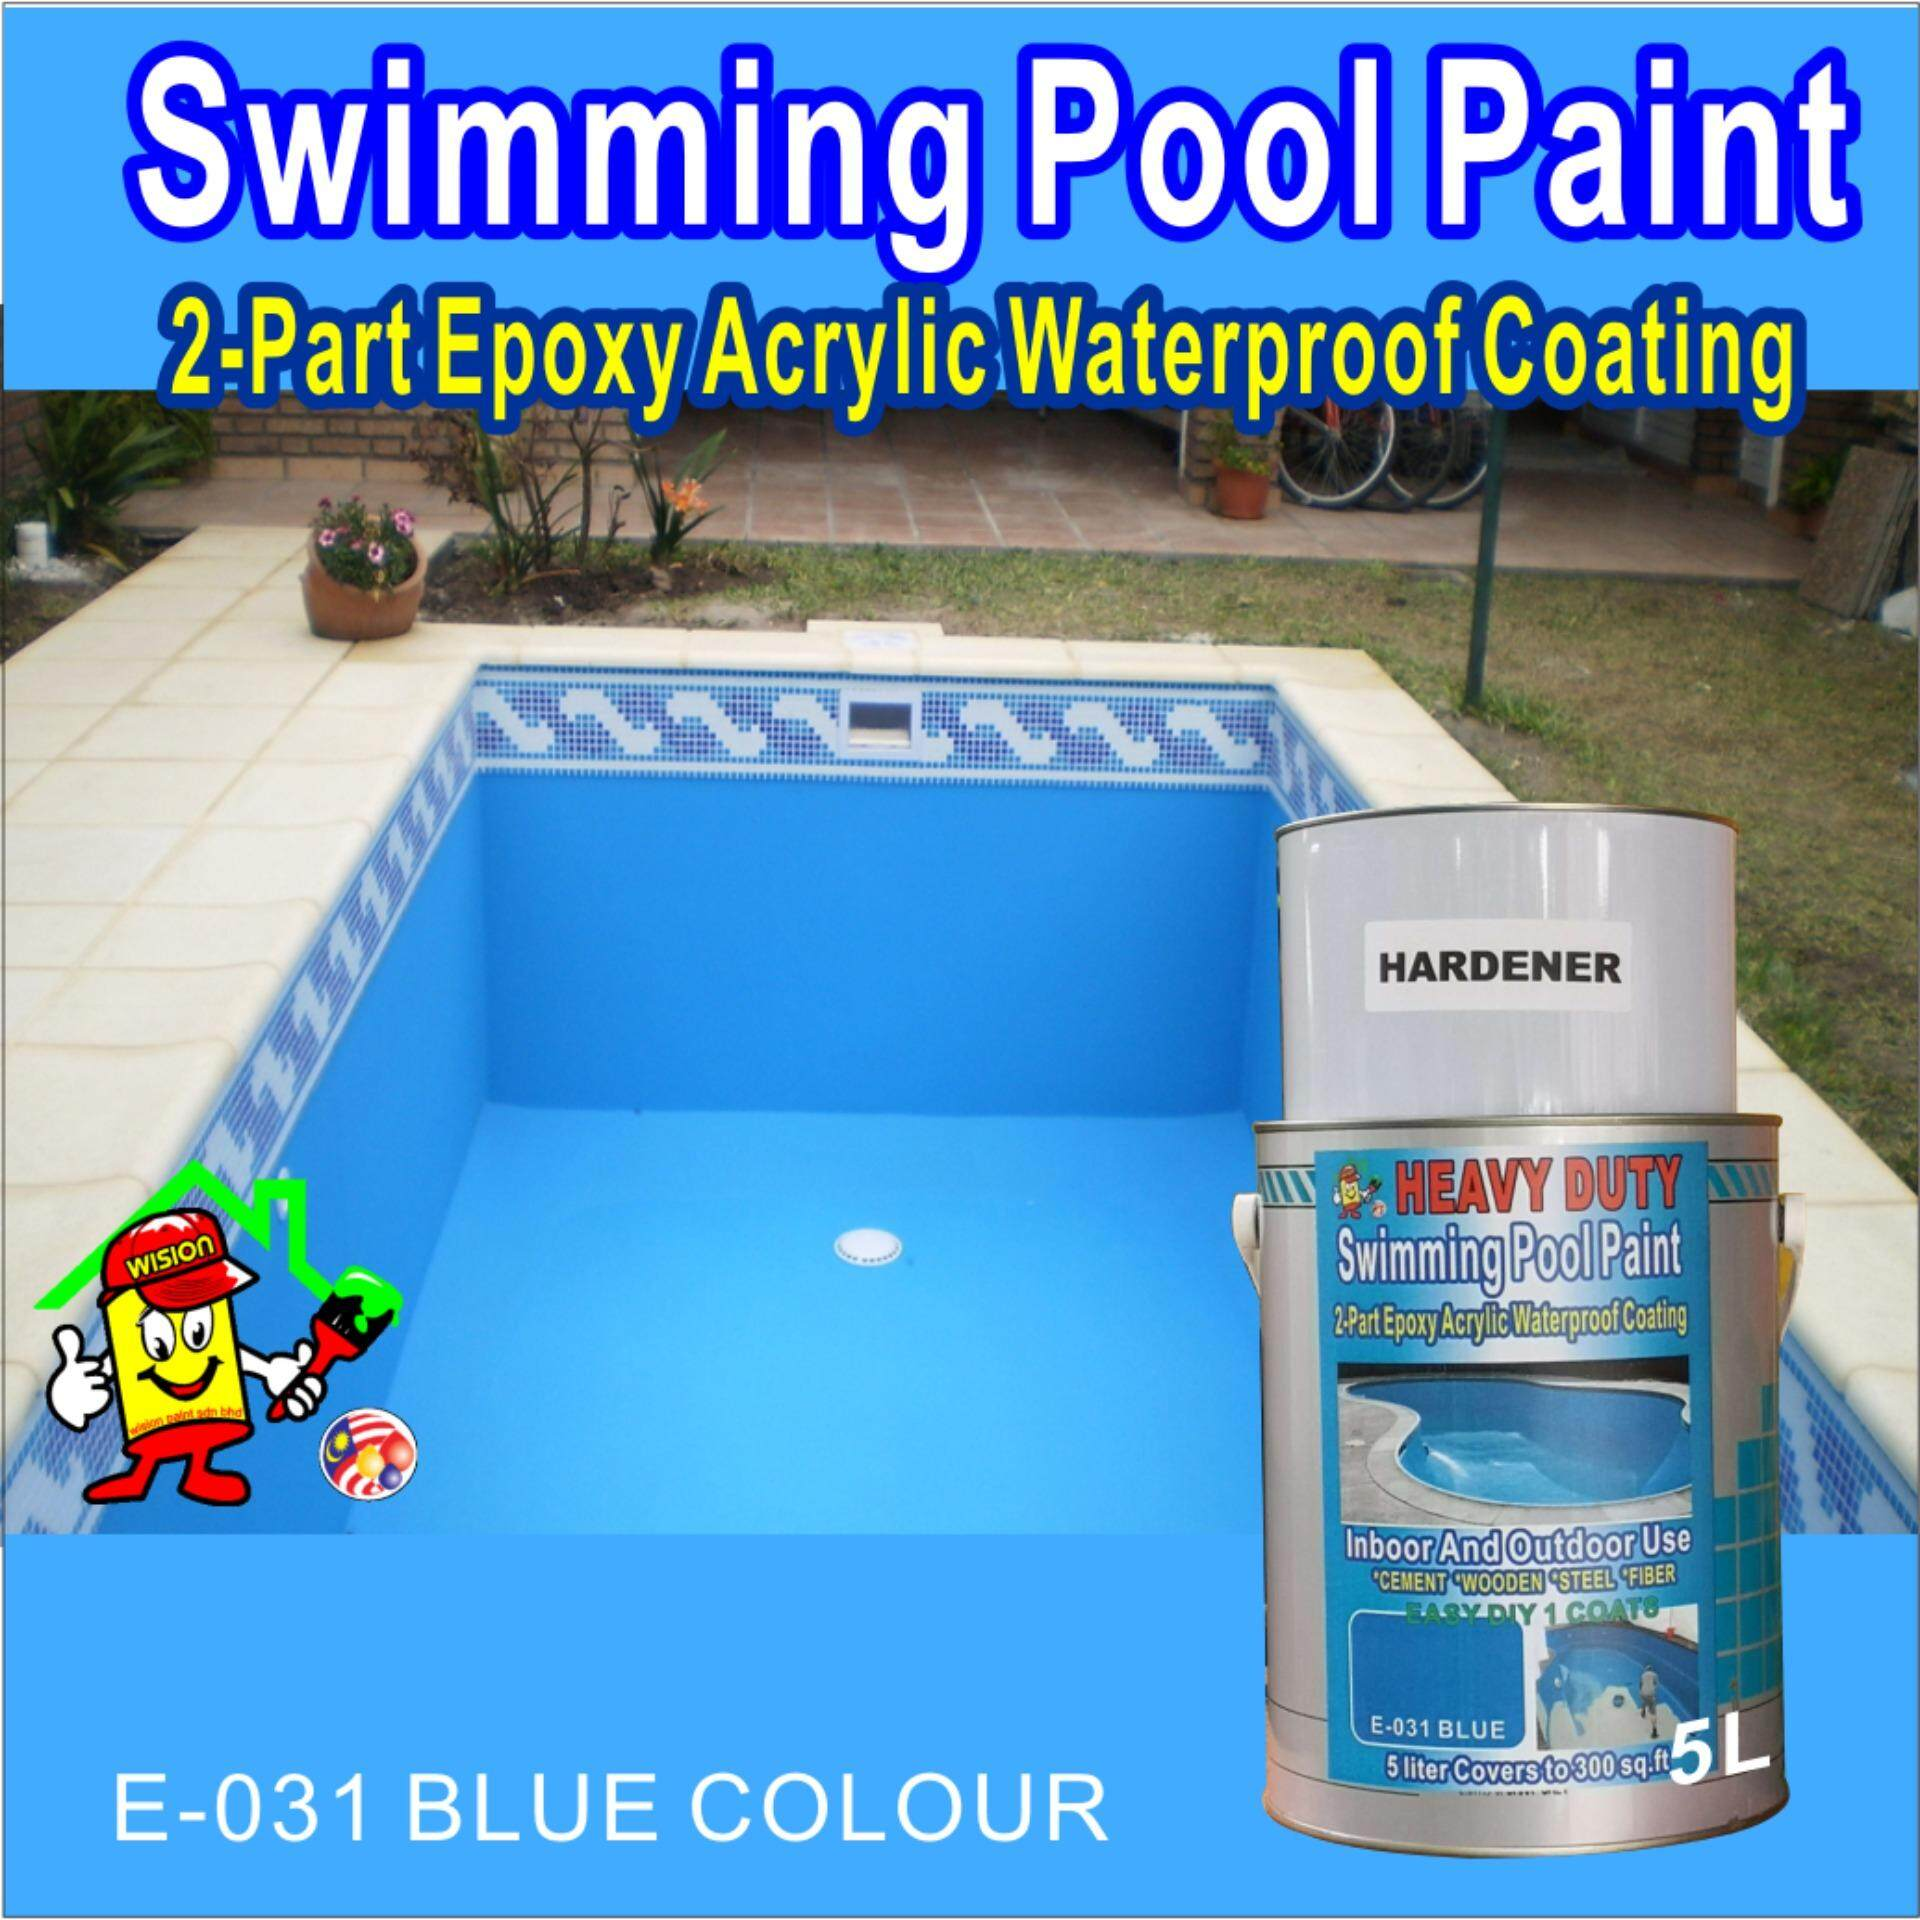 E-031 BLUE ( 5L ) SWIMMING POOL PAINT 2-PART EPOXY ACRYLIC WATERPROOF COATING PAINT INDOOR AND OUTDOOR USE CEMENT WOODEN STEEL FIBER